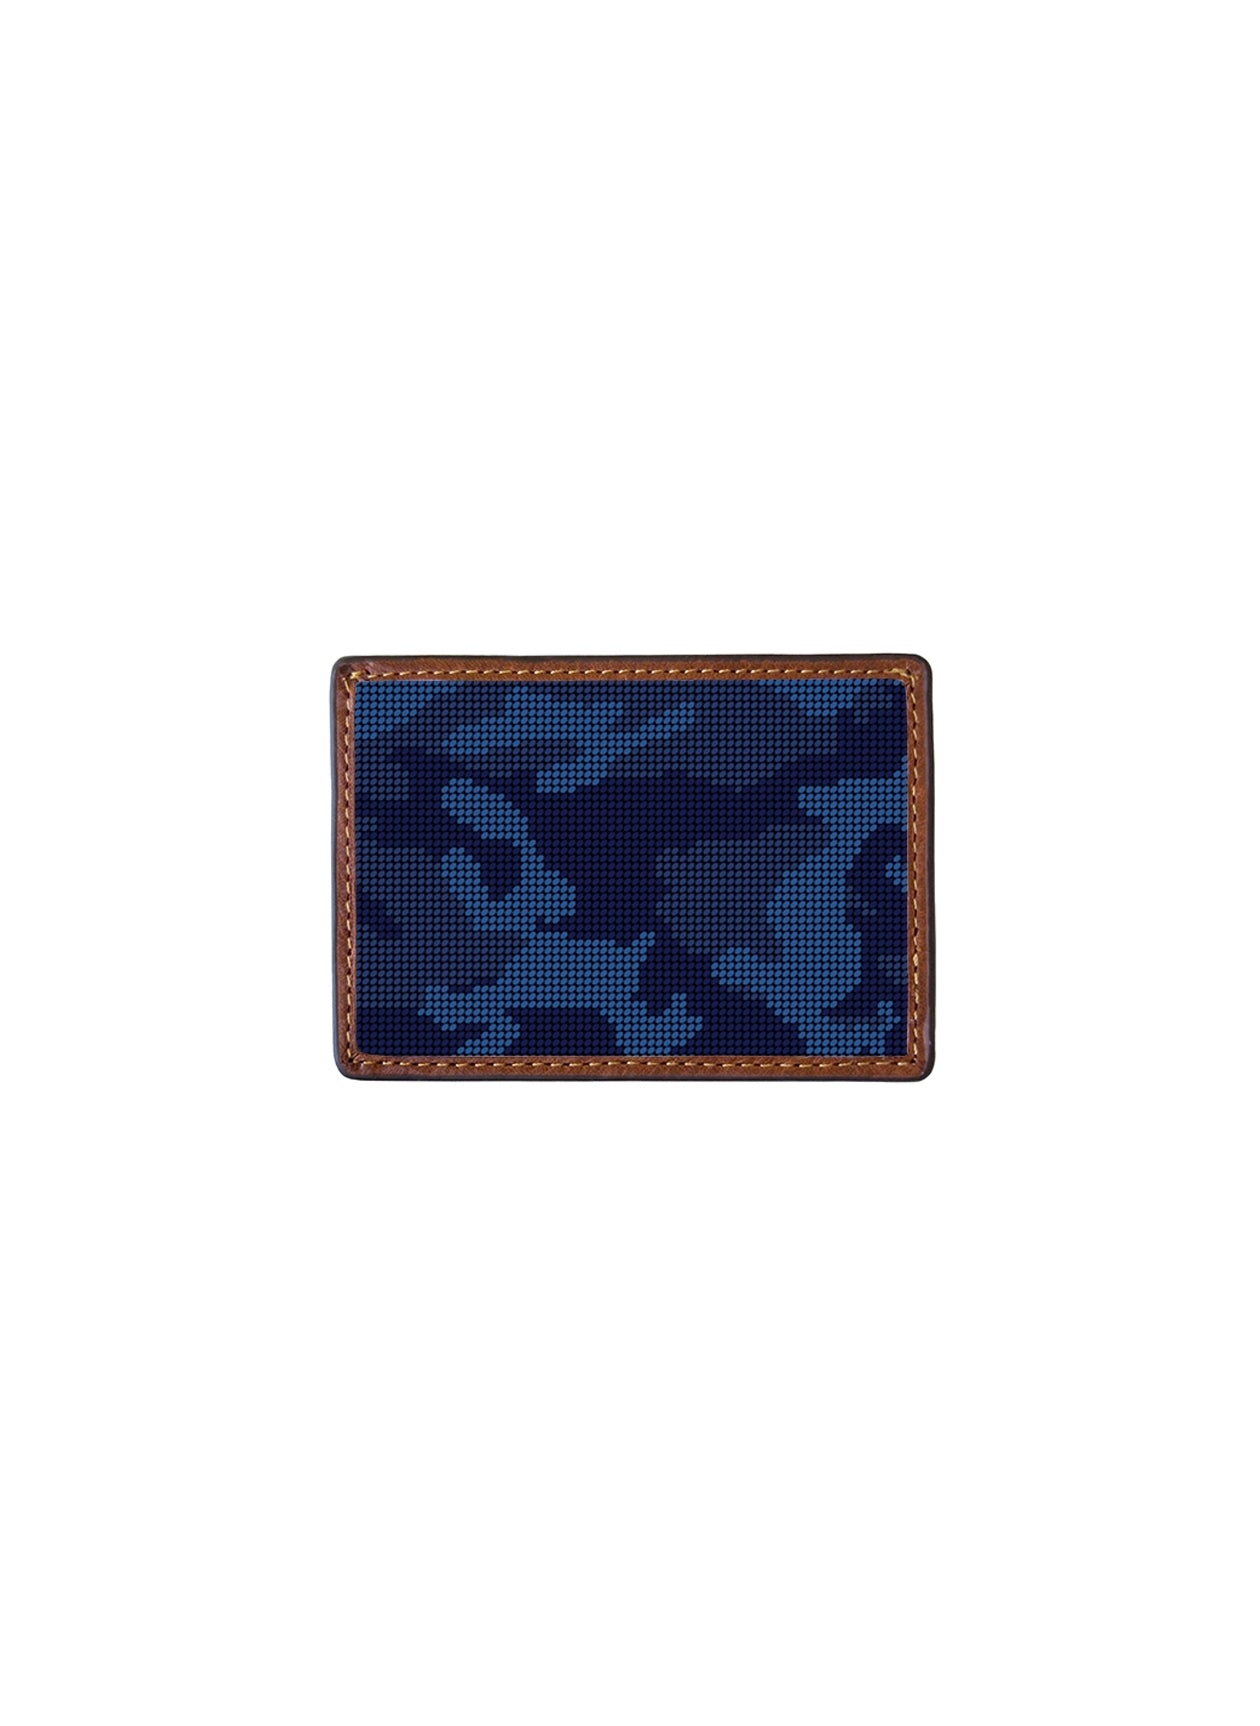 NAVY CAMO CREDIT CARD WALLET